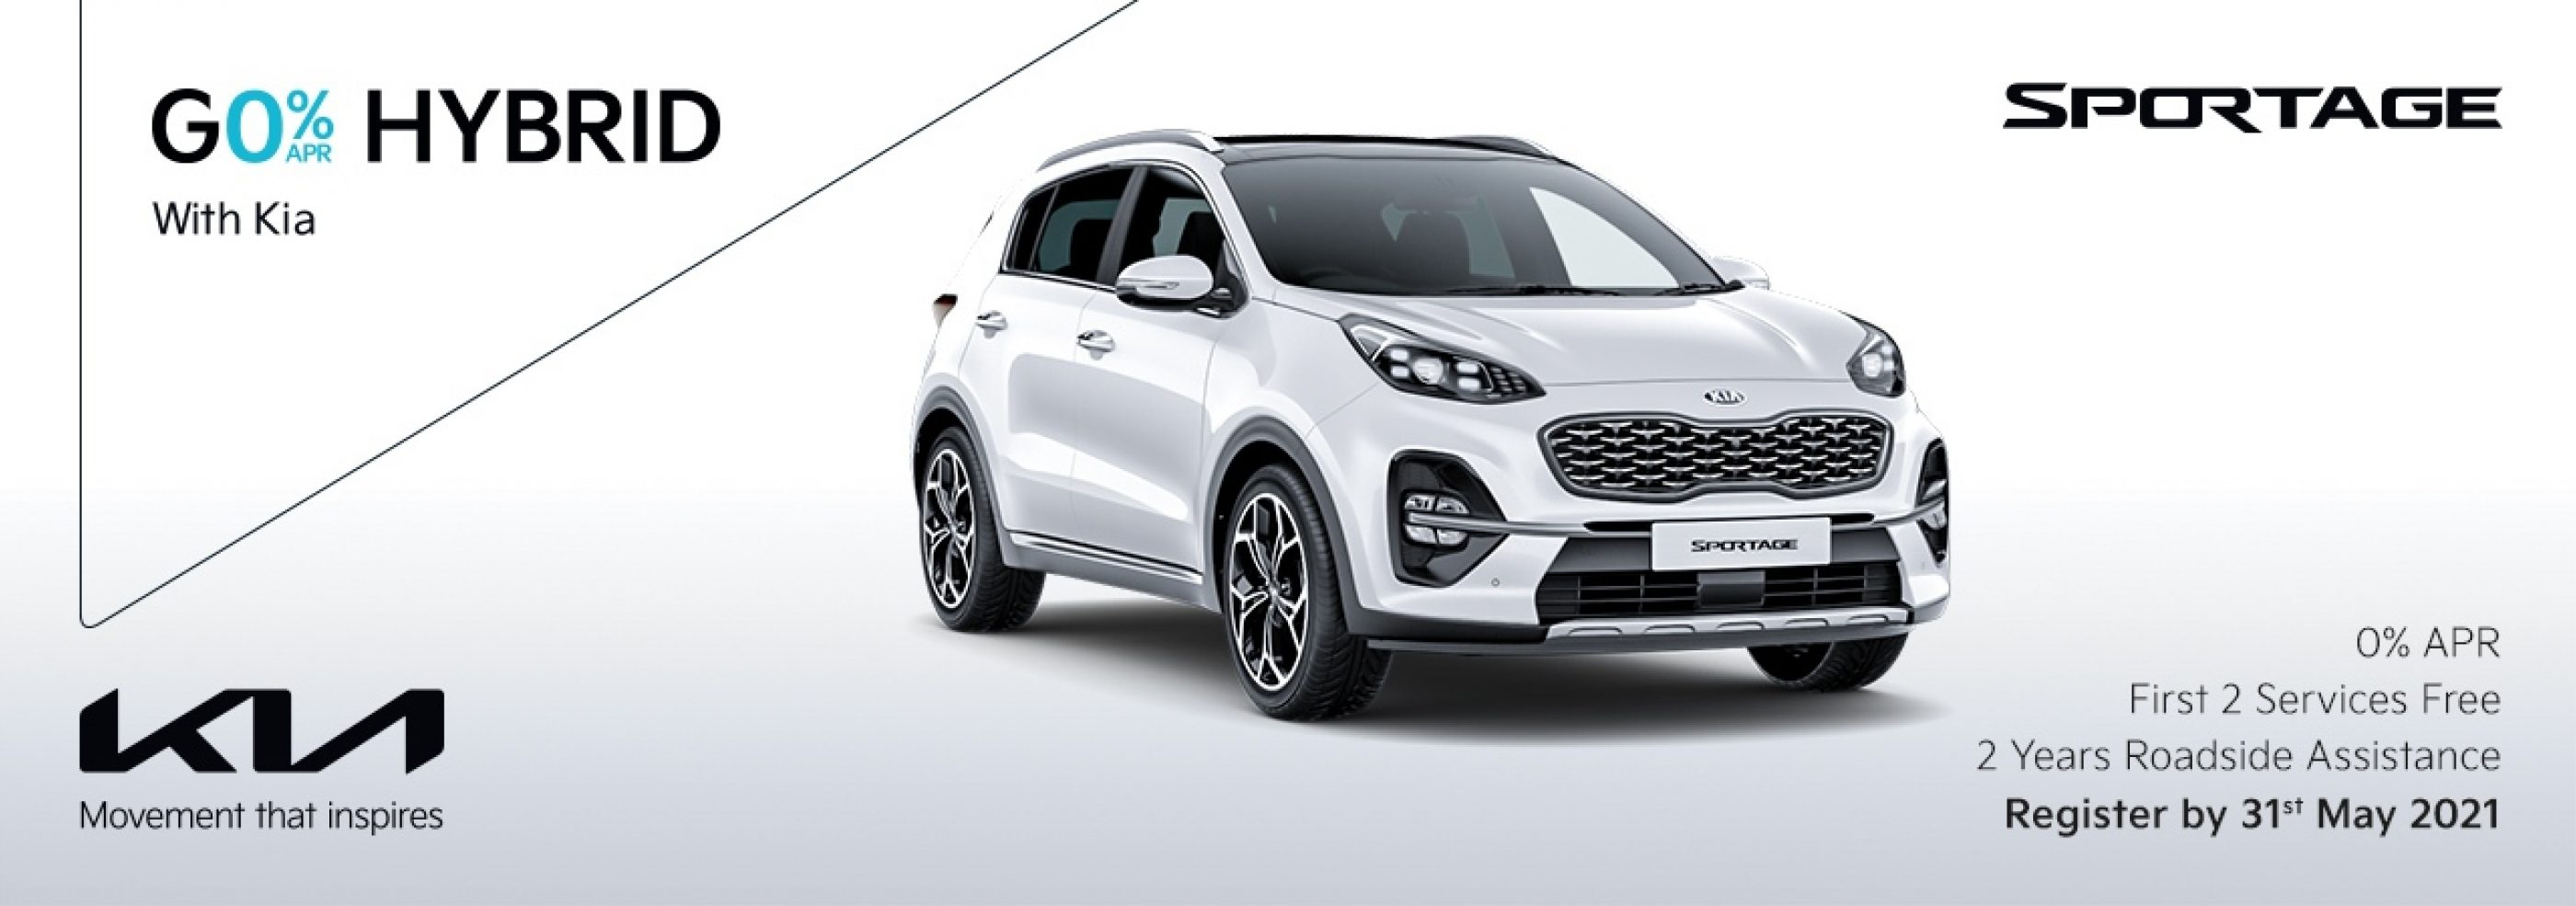 Gohybrid sportage updated